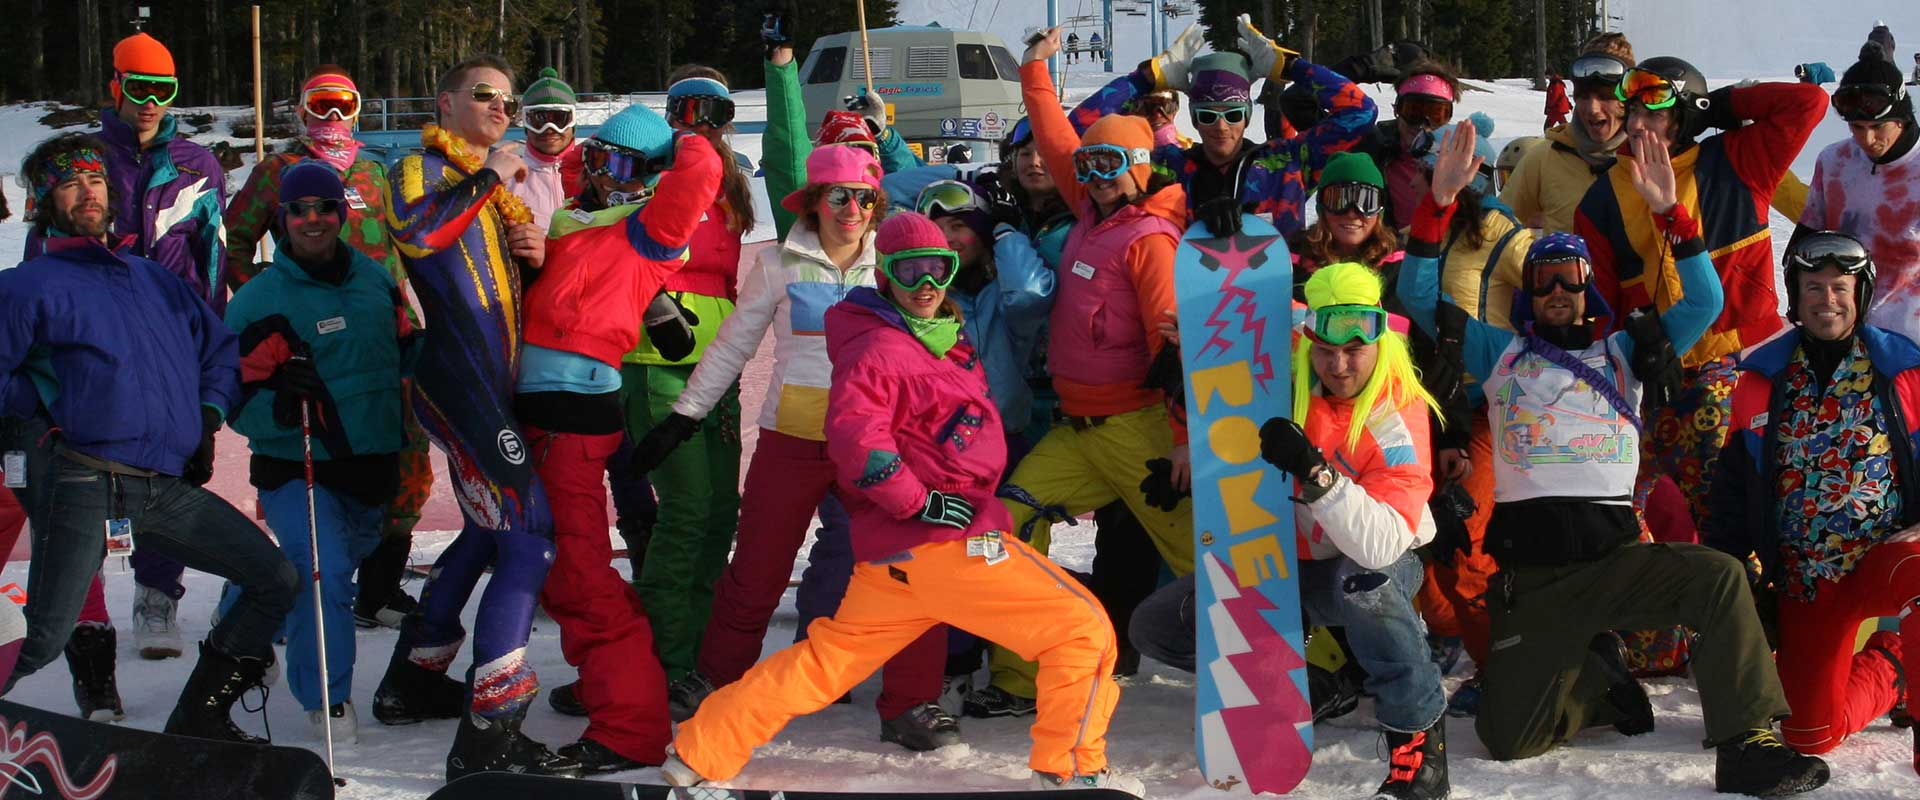 The worlds funnest ski and snowboard training